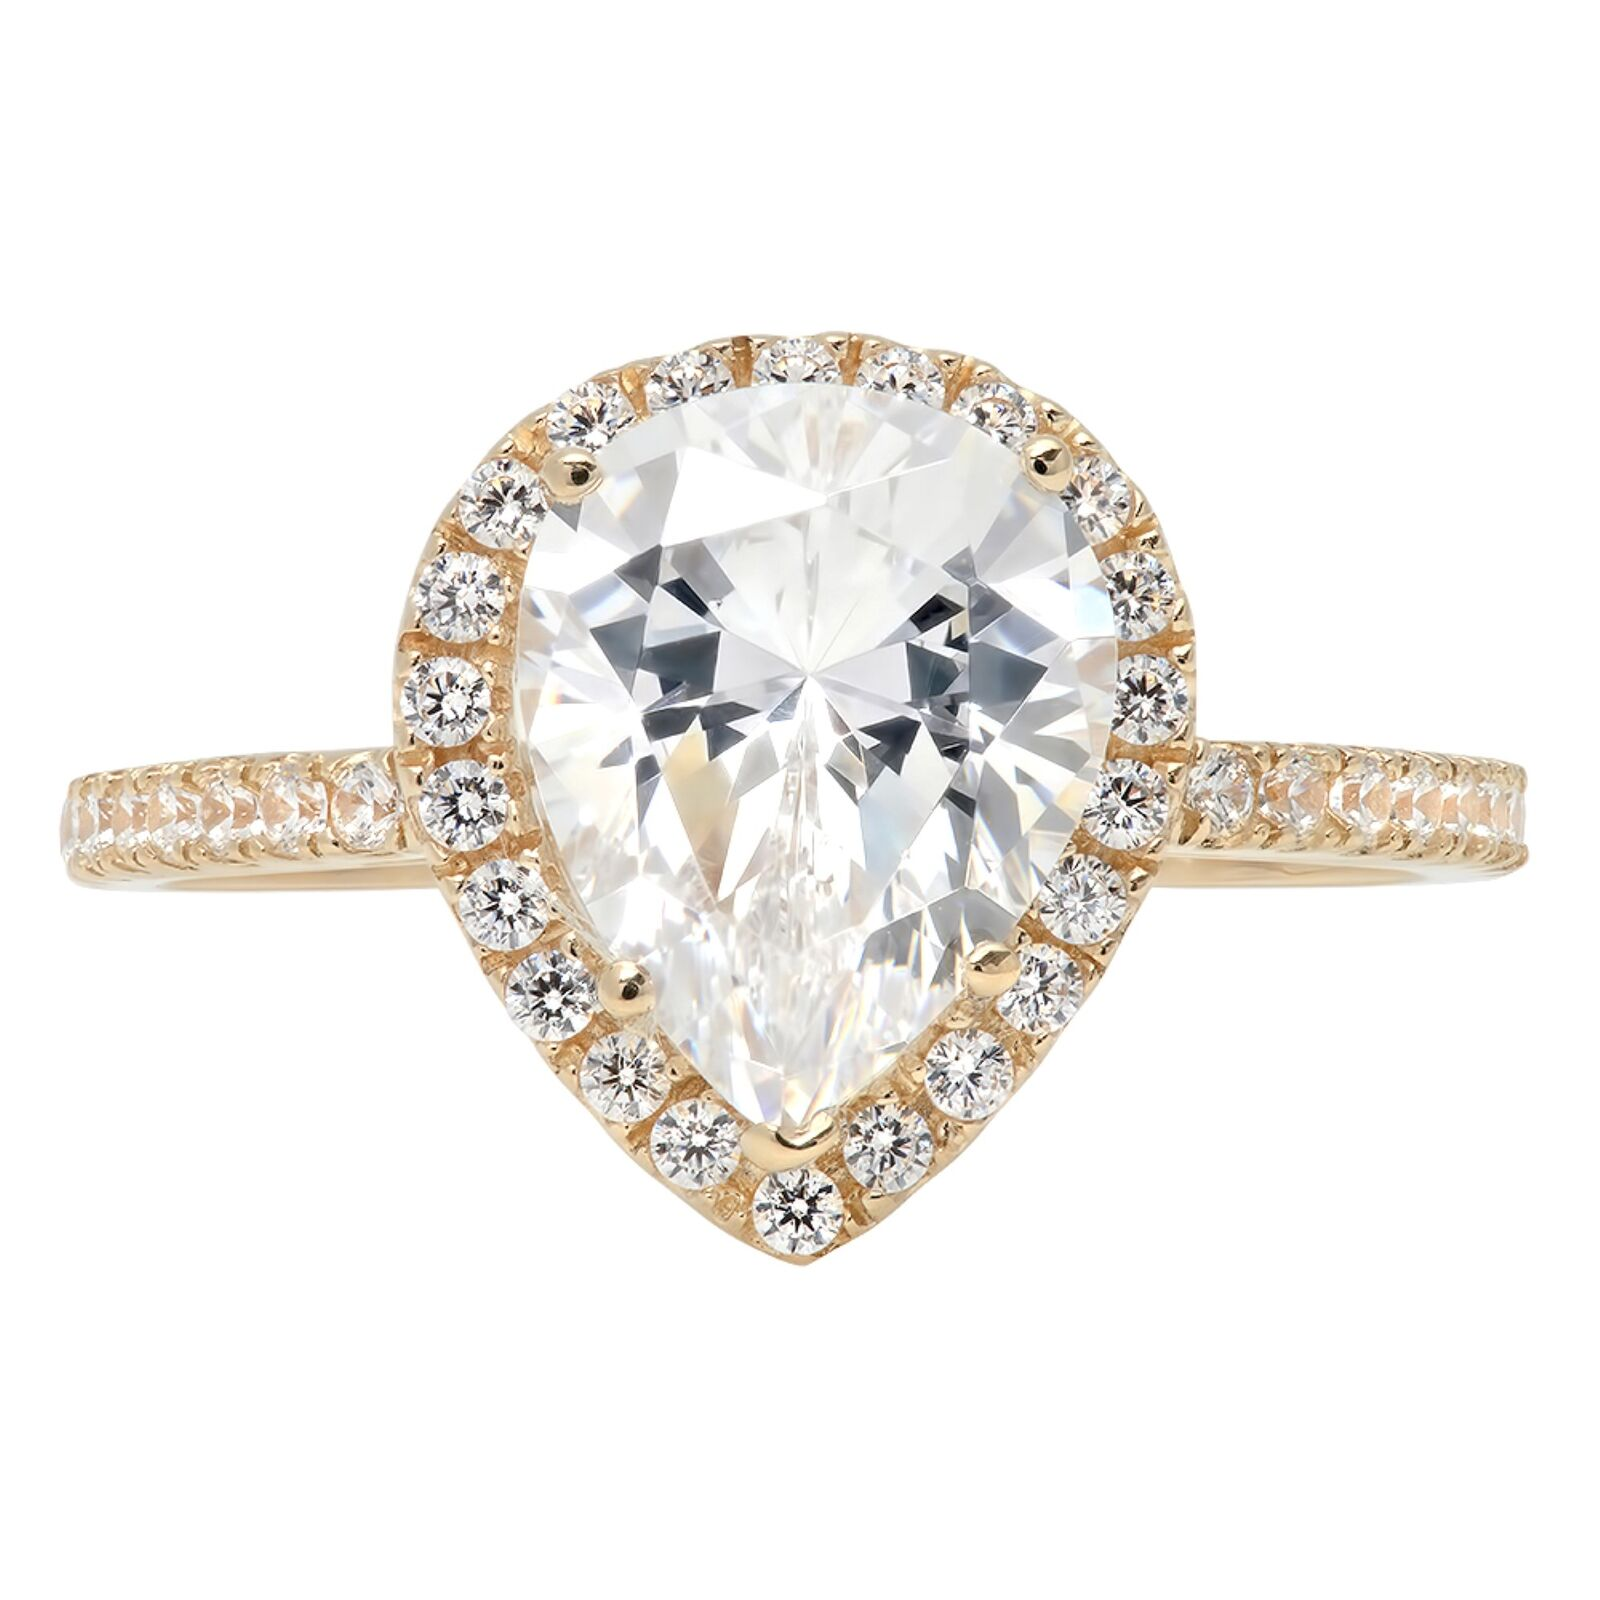 2.45ct Pear Cut Halo Wedding Anniversary Engagement Bridal Ring 14k Yellow gold